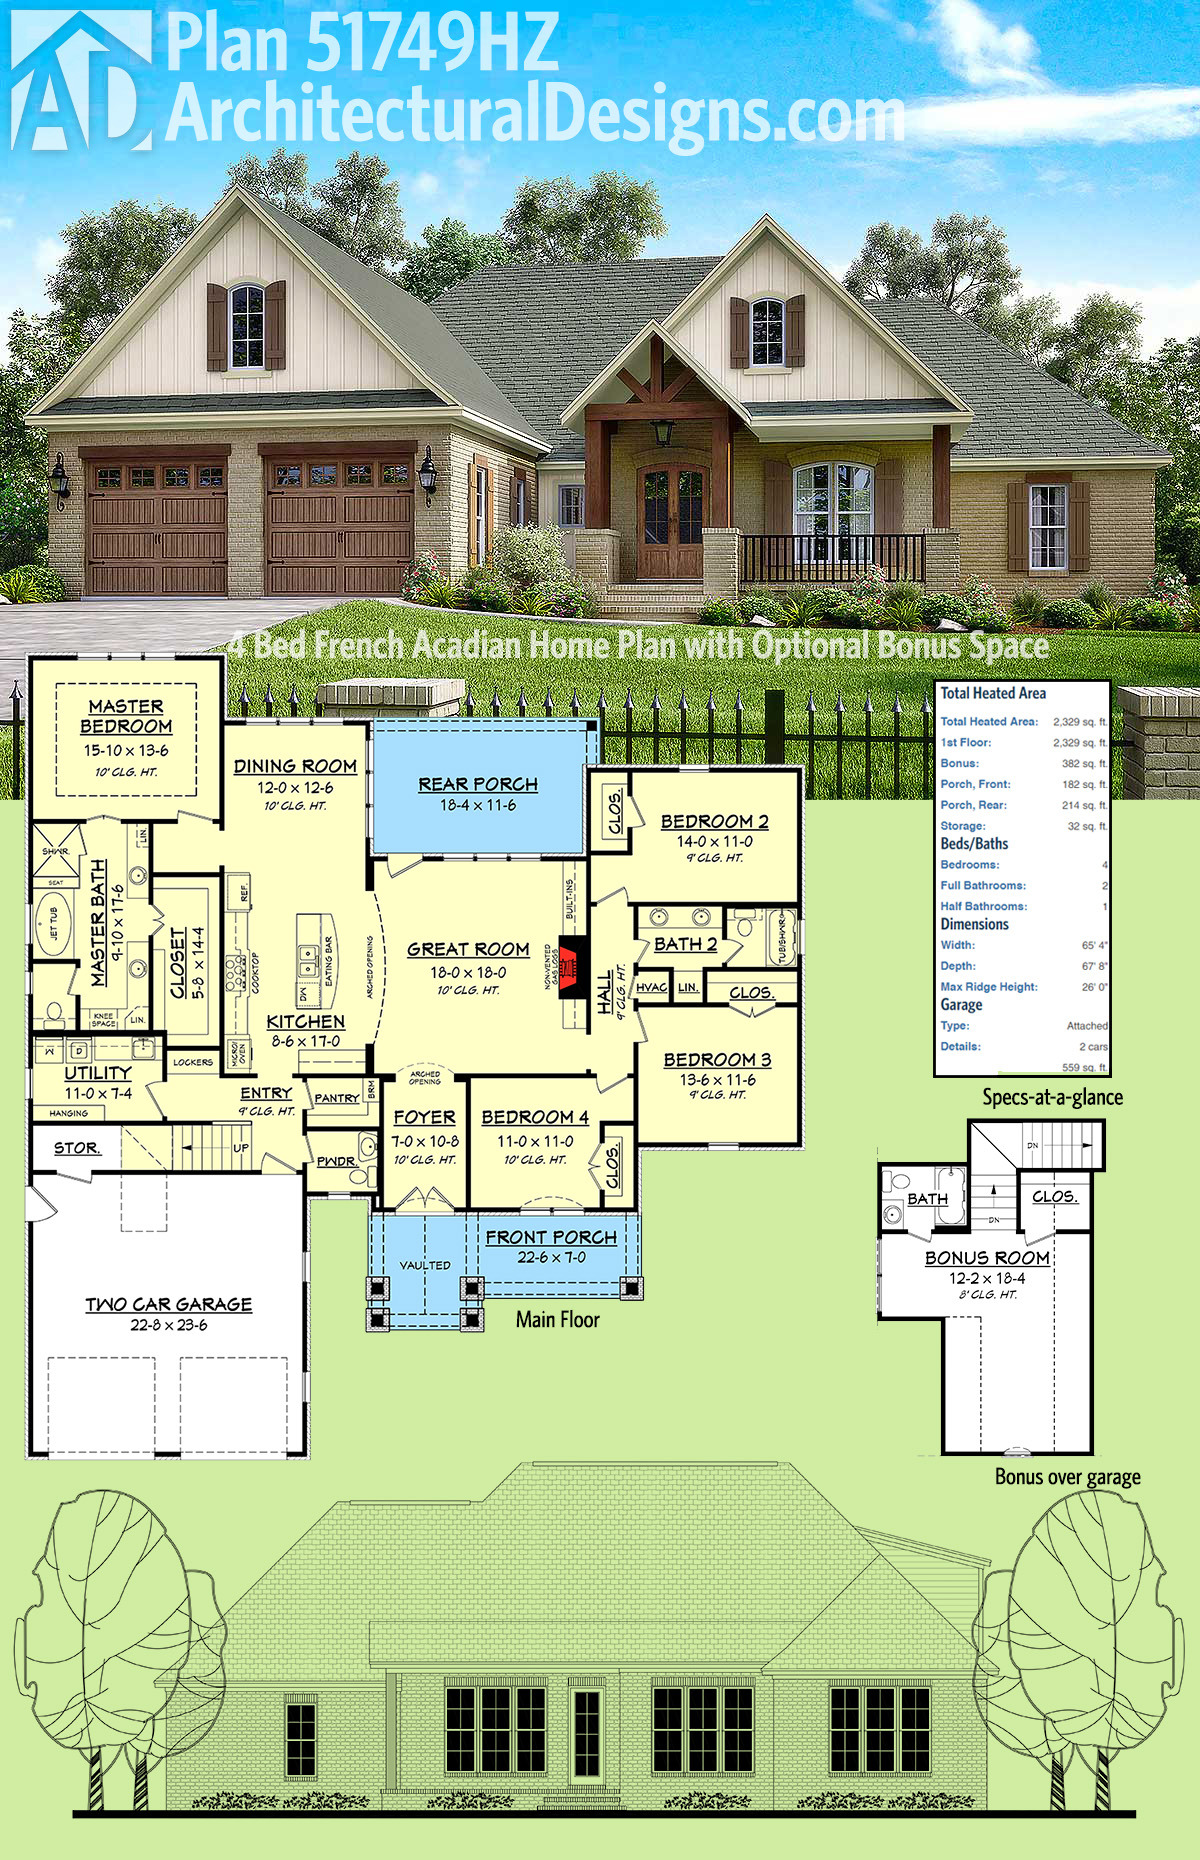 acadian home plans small acadian house plans craftsman style house plans with wrap around porch louisiana acadian house plans home plans with porches houseplans southernliving rustic ranch